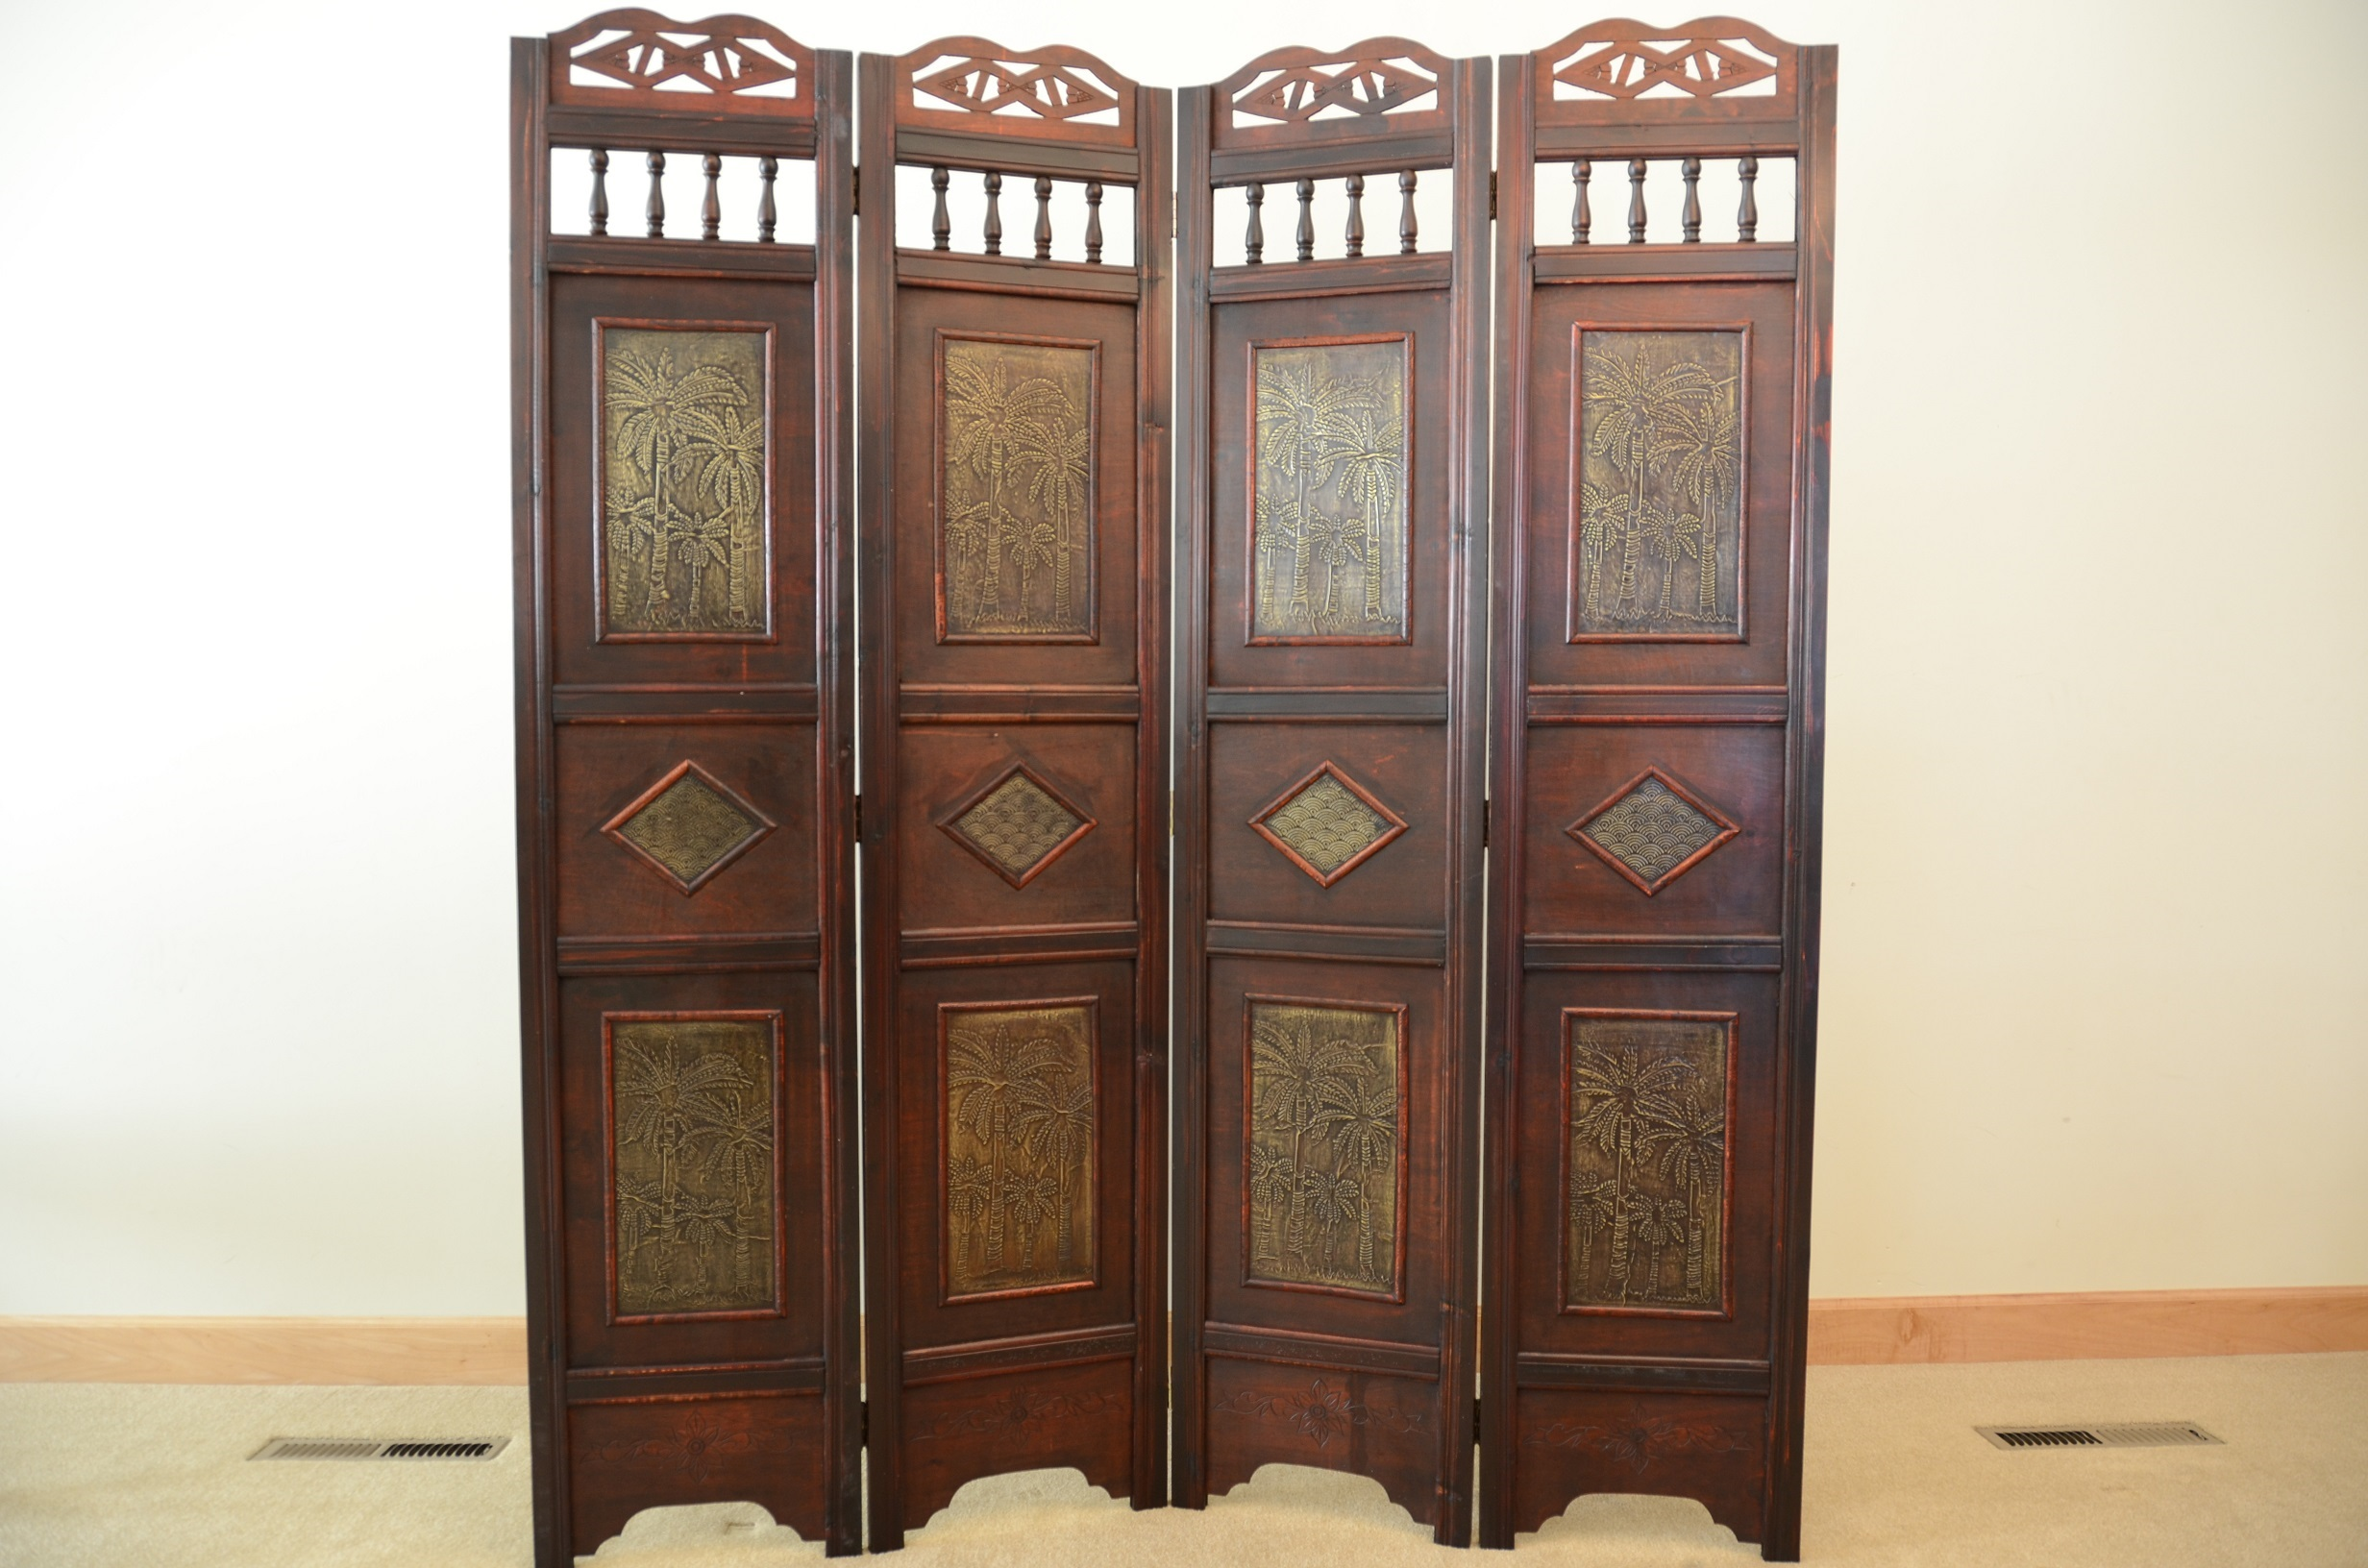 palm tree room divider screen 4 panel wooden frame | ebay